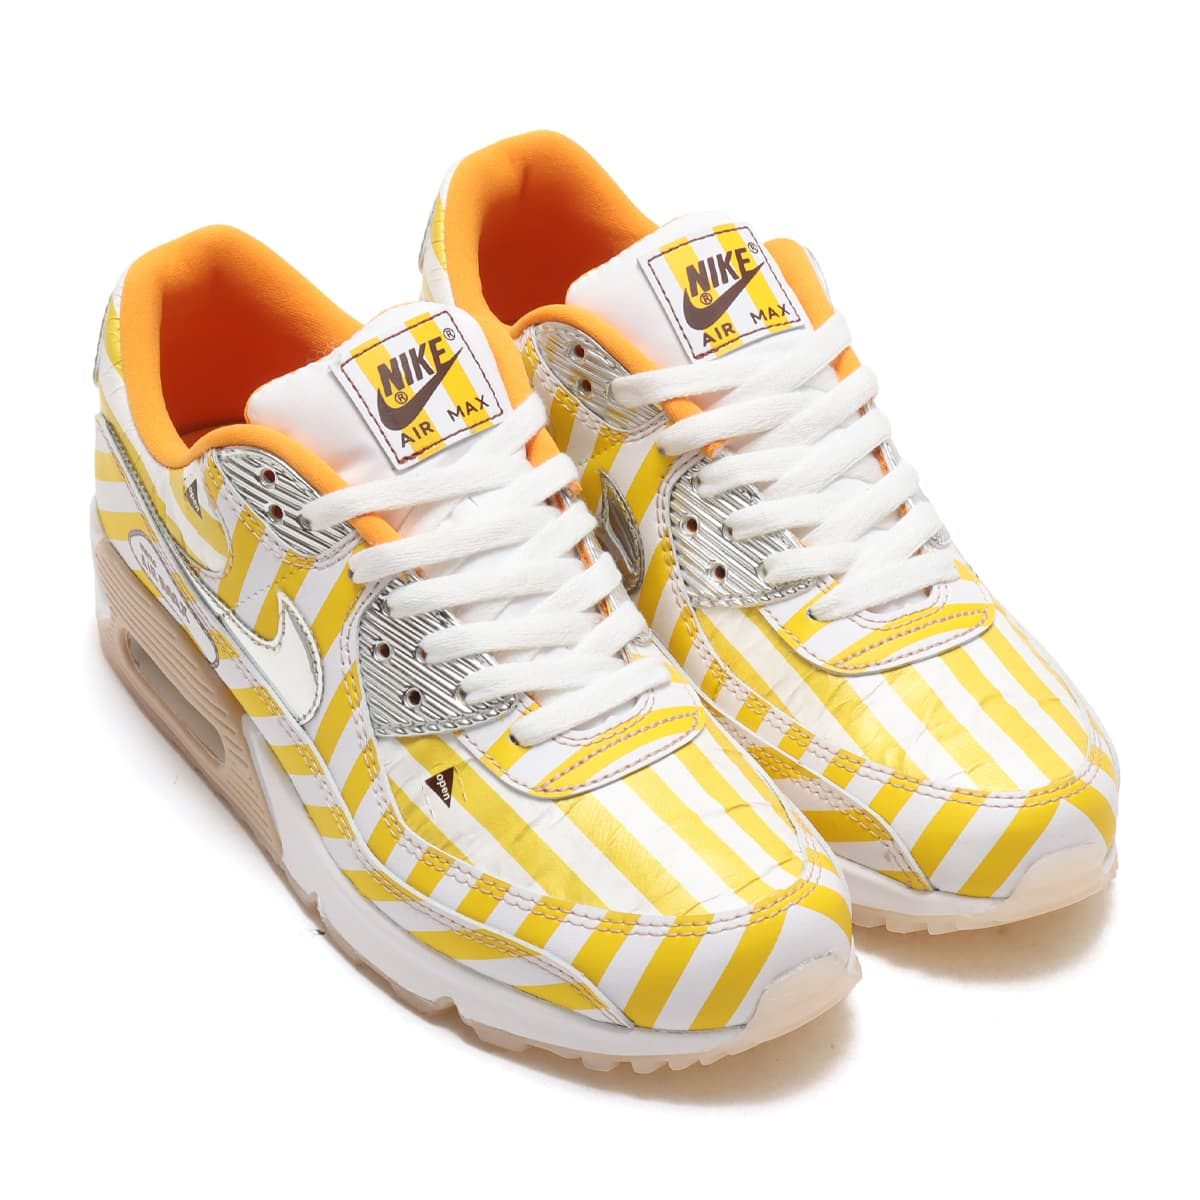 NIKE AIR MAX 90 SE SPEED YELLOW/SHIMMER-WHITE-SIREN RED 21SP-I_photo_large